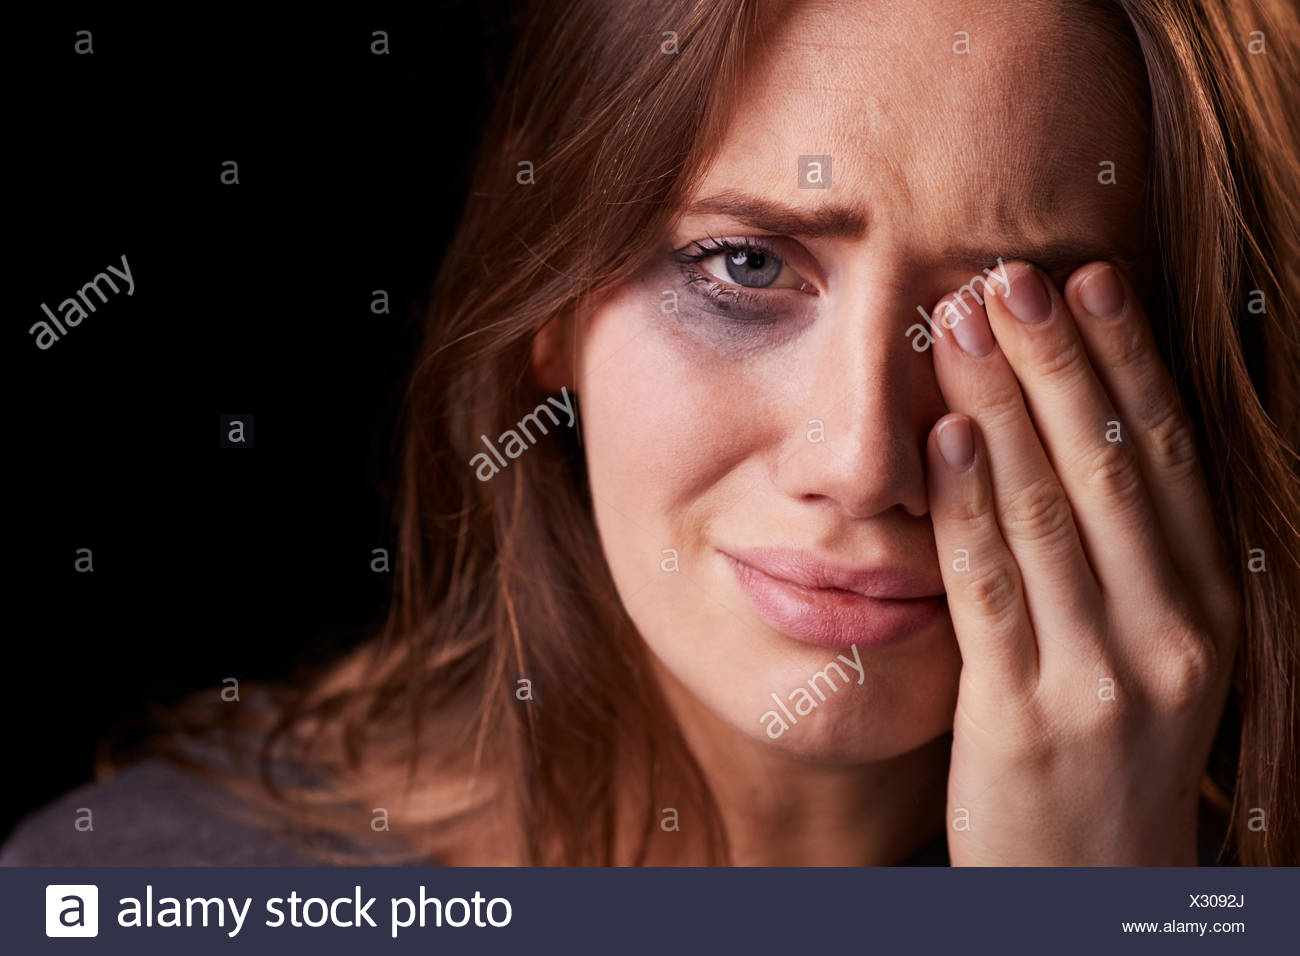 Studio Portrait Of Crying Young Woman With Smudged Eye Make Up - Stock Image